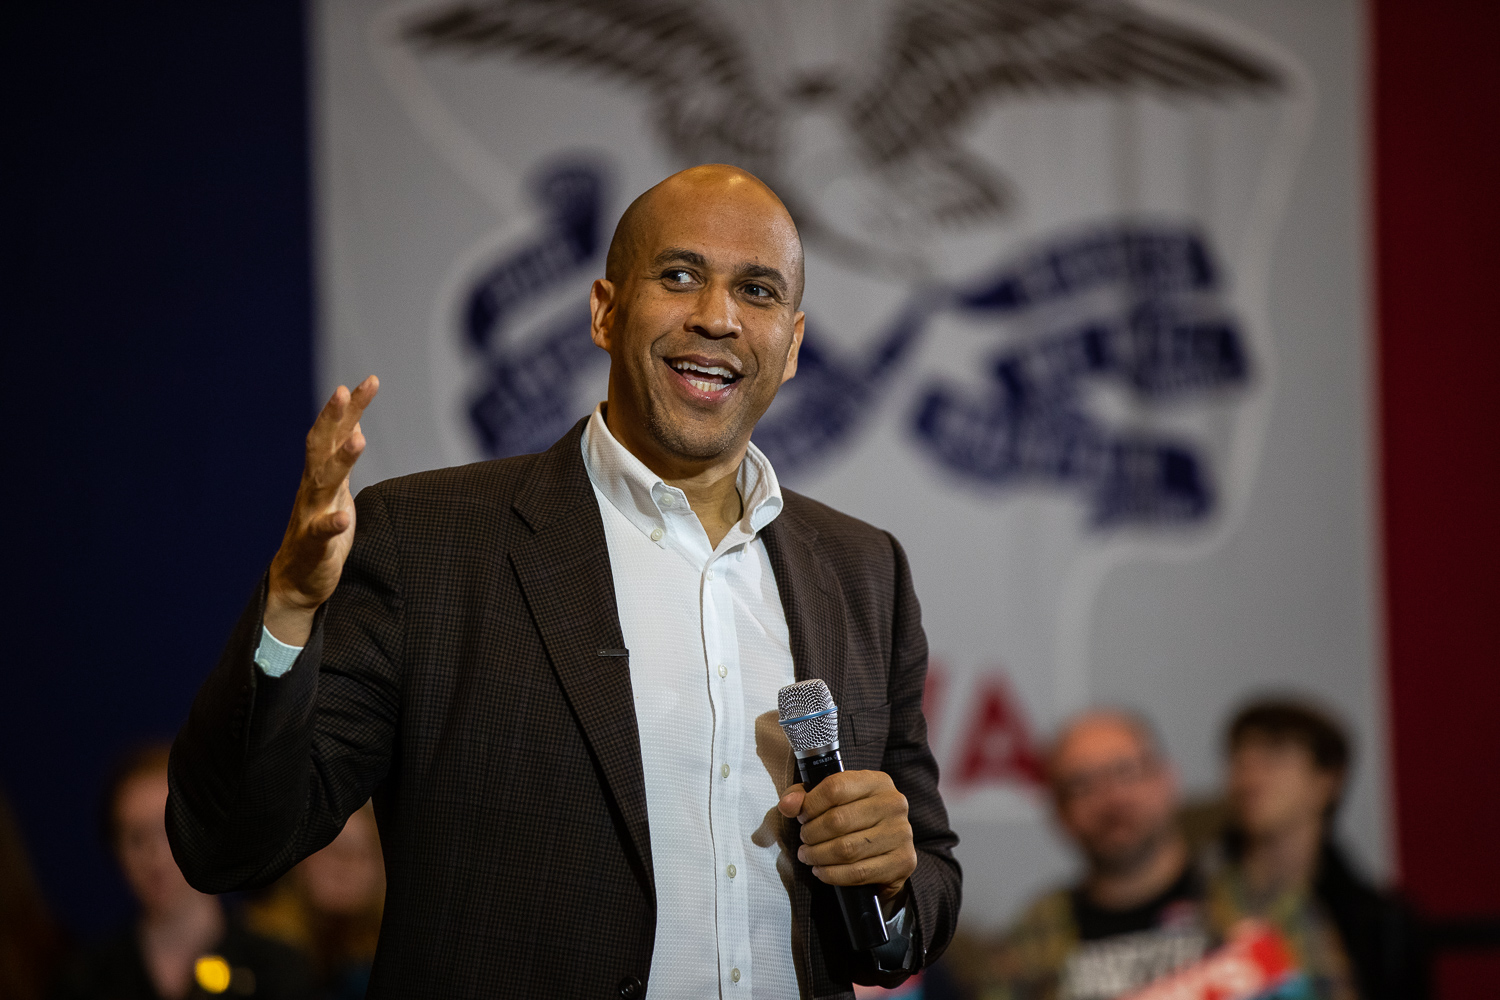 Senator Cory Booker, D-NJ, speaks to an audience during a forum at the Iowa Memorial Union on Monday, October 7, 2019.